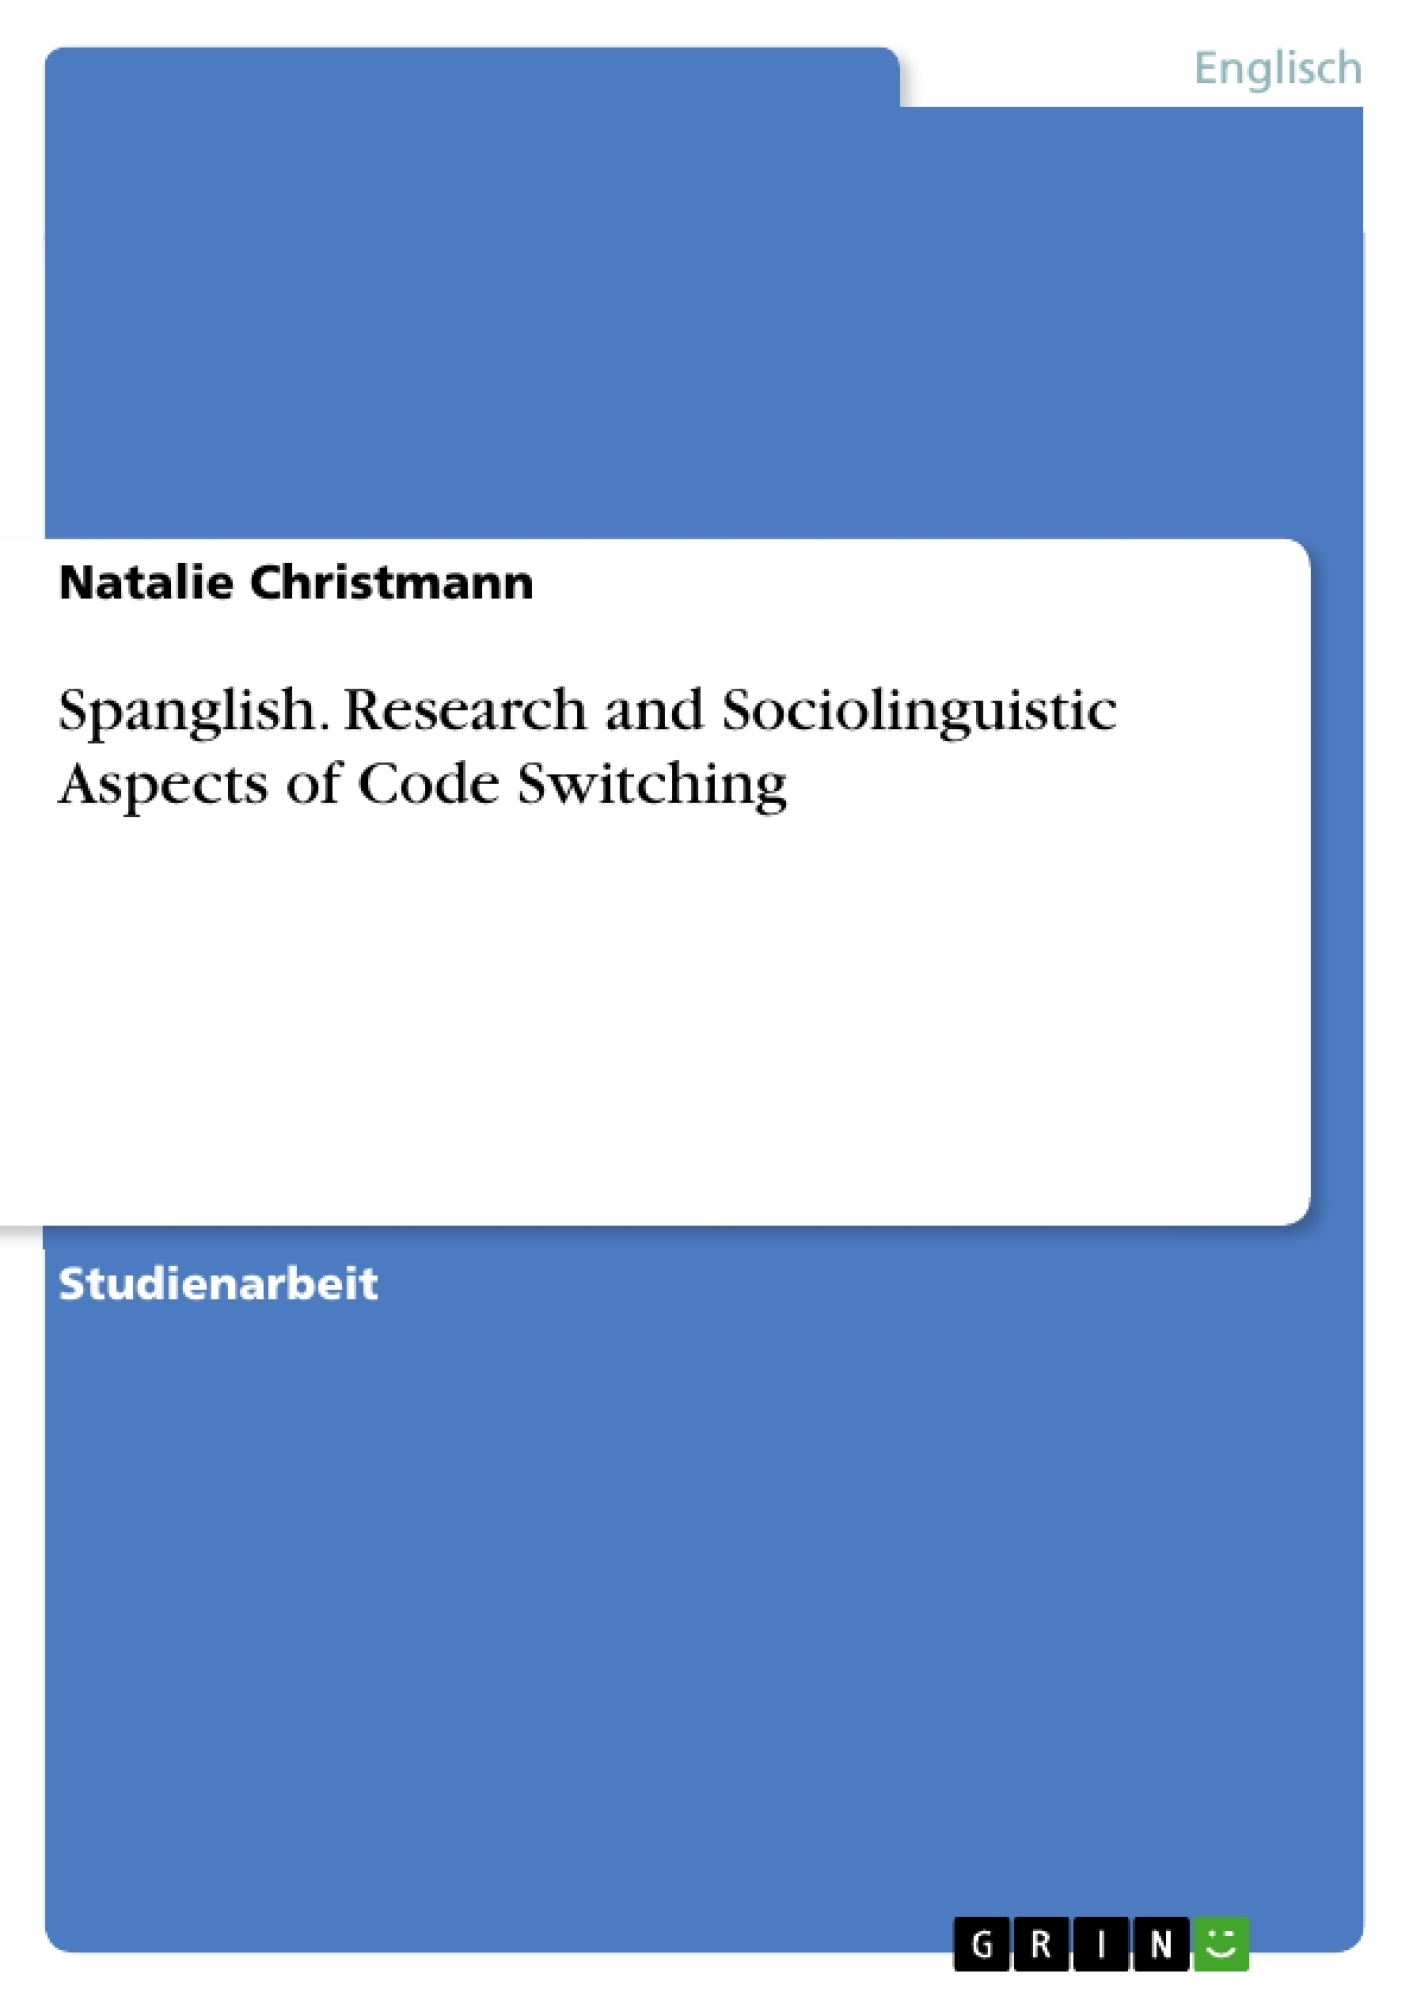 Titel: Spanglish. Research and Sociolinguistic Aspects of Code Switching